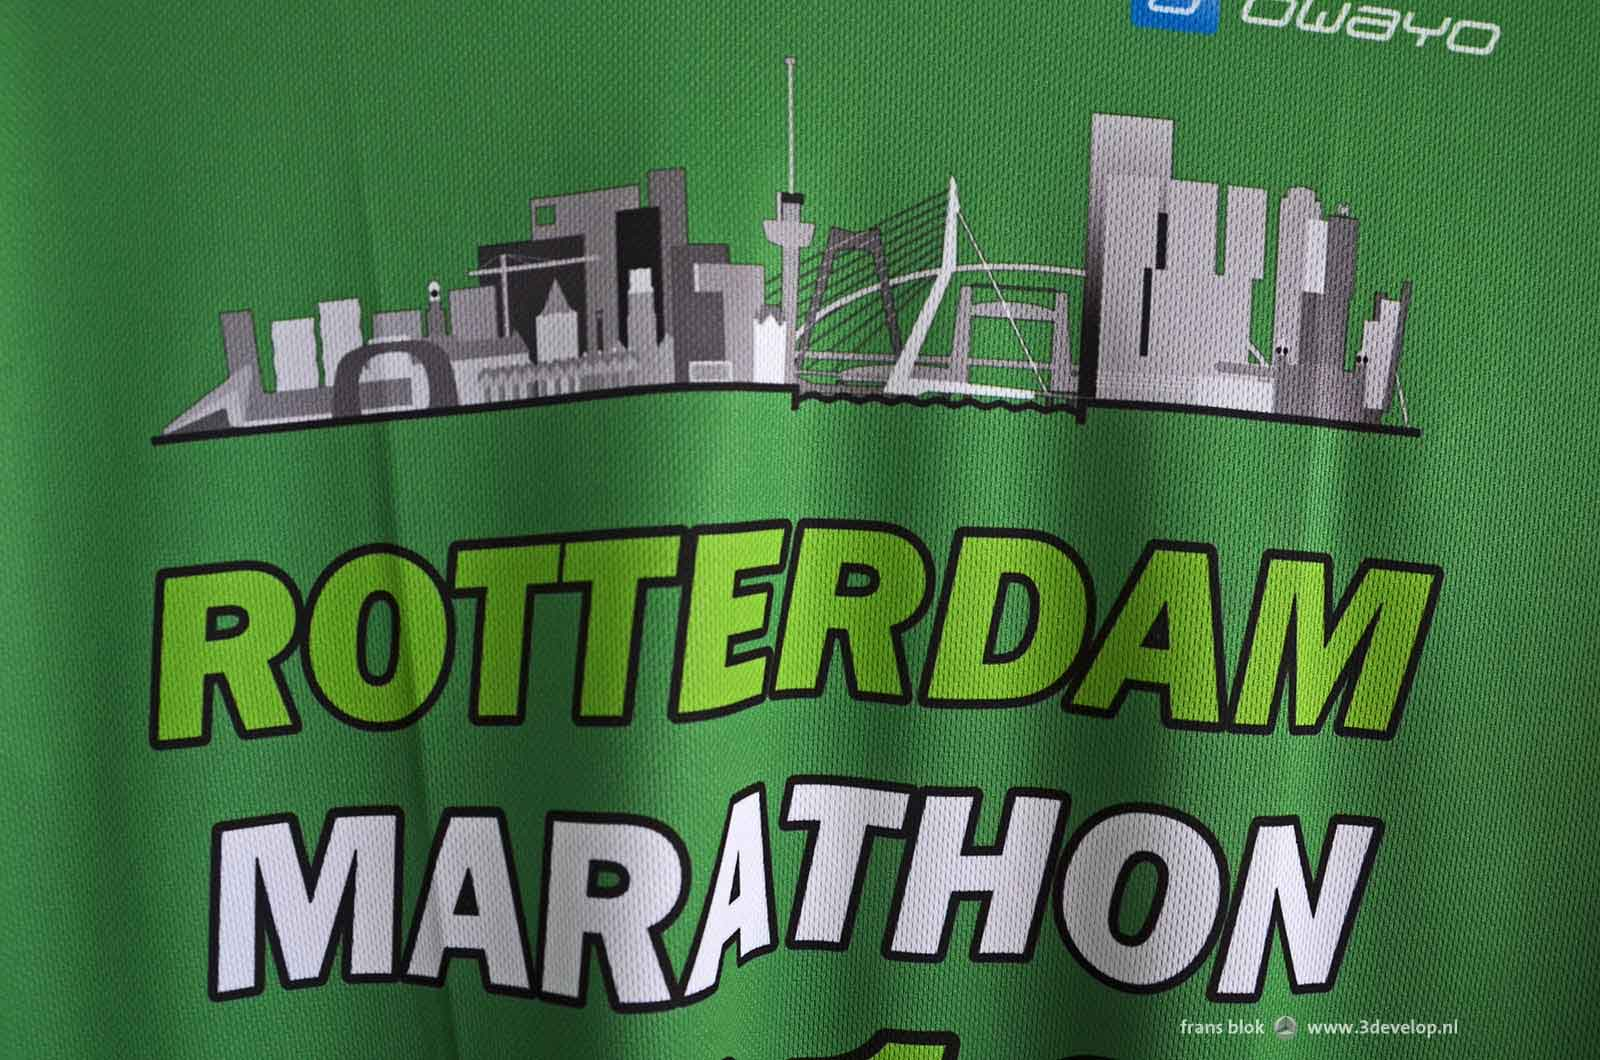 Graphical representation of the Rotterdam skyline with the most important buildings and bridges, on a shirt made on the occasion of the 2016 edition of the Rotterdam marathon.